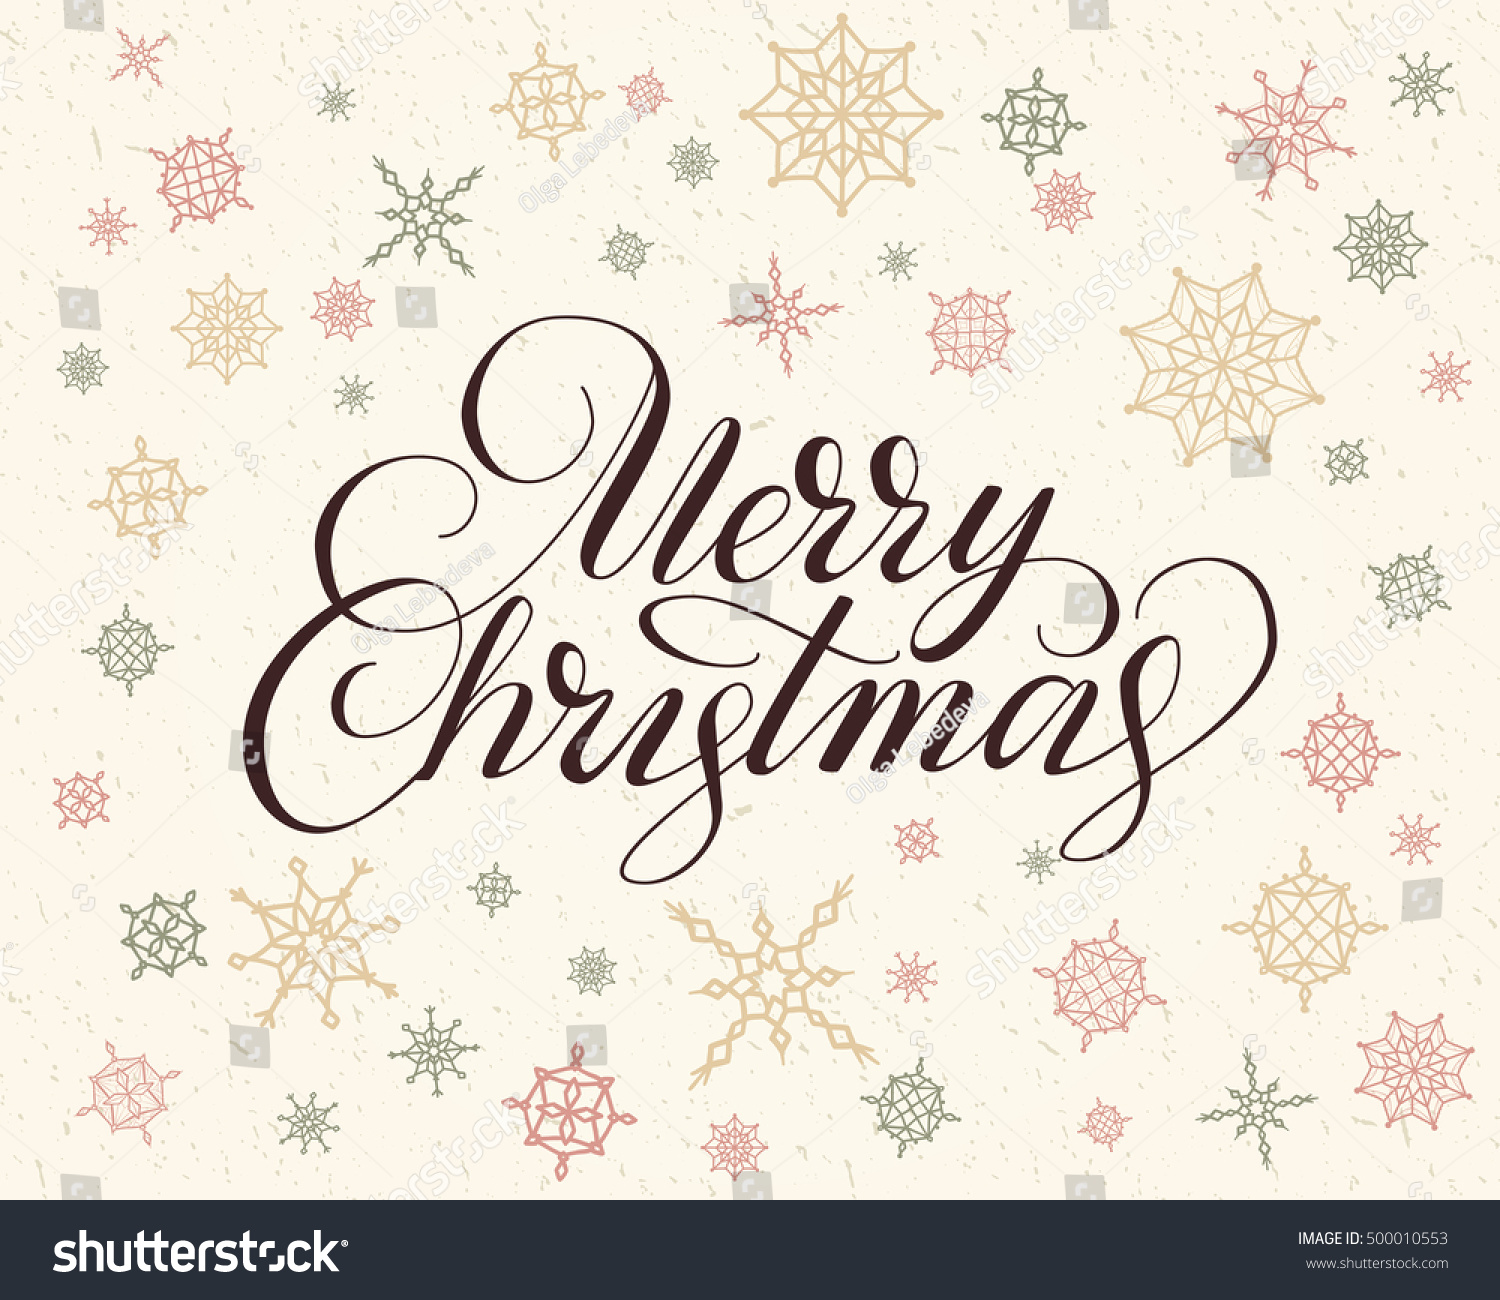 Merry Christmas Lettering Over Background With Snowflakes